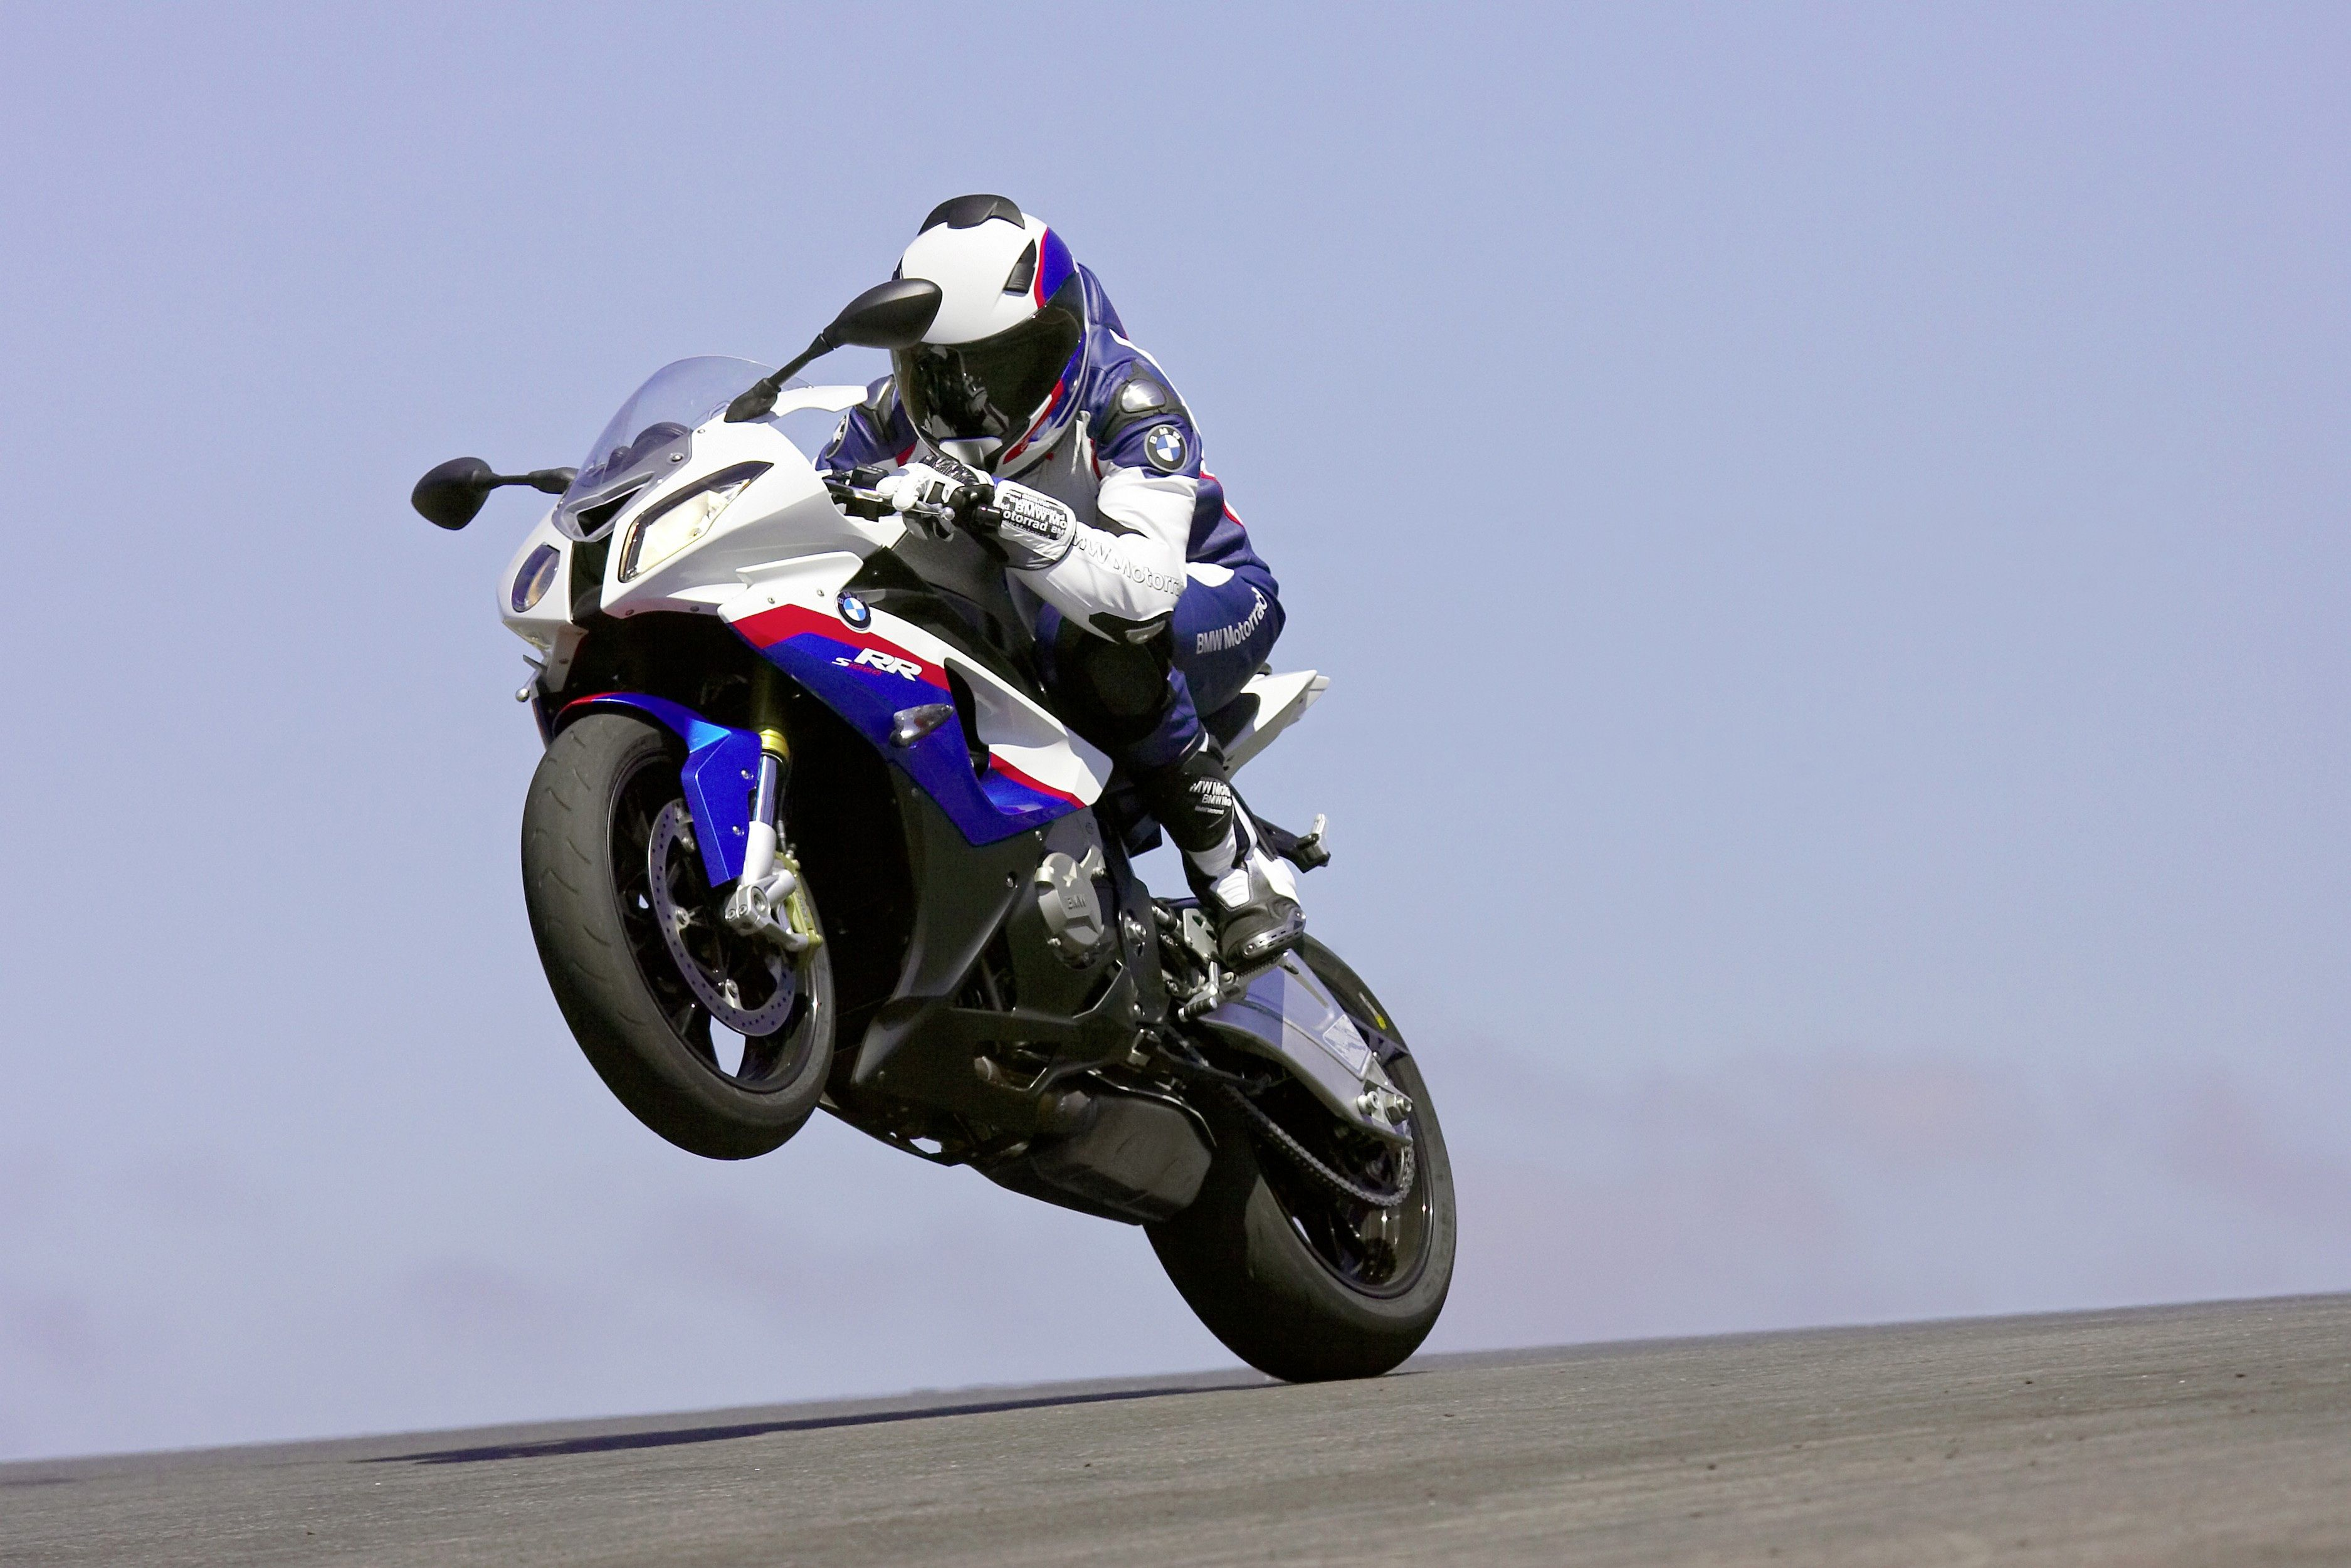 Wallpapers race track, motorcycling, bmw s1000rr, racing